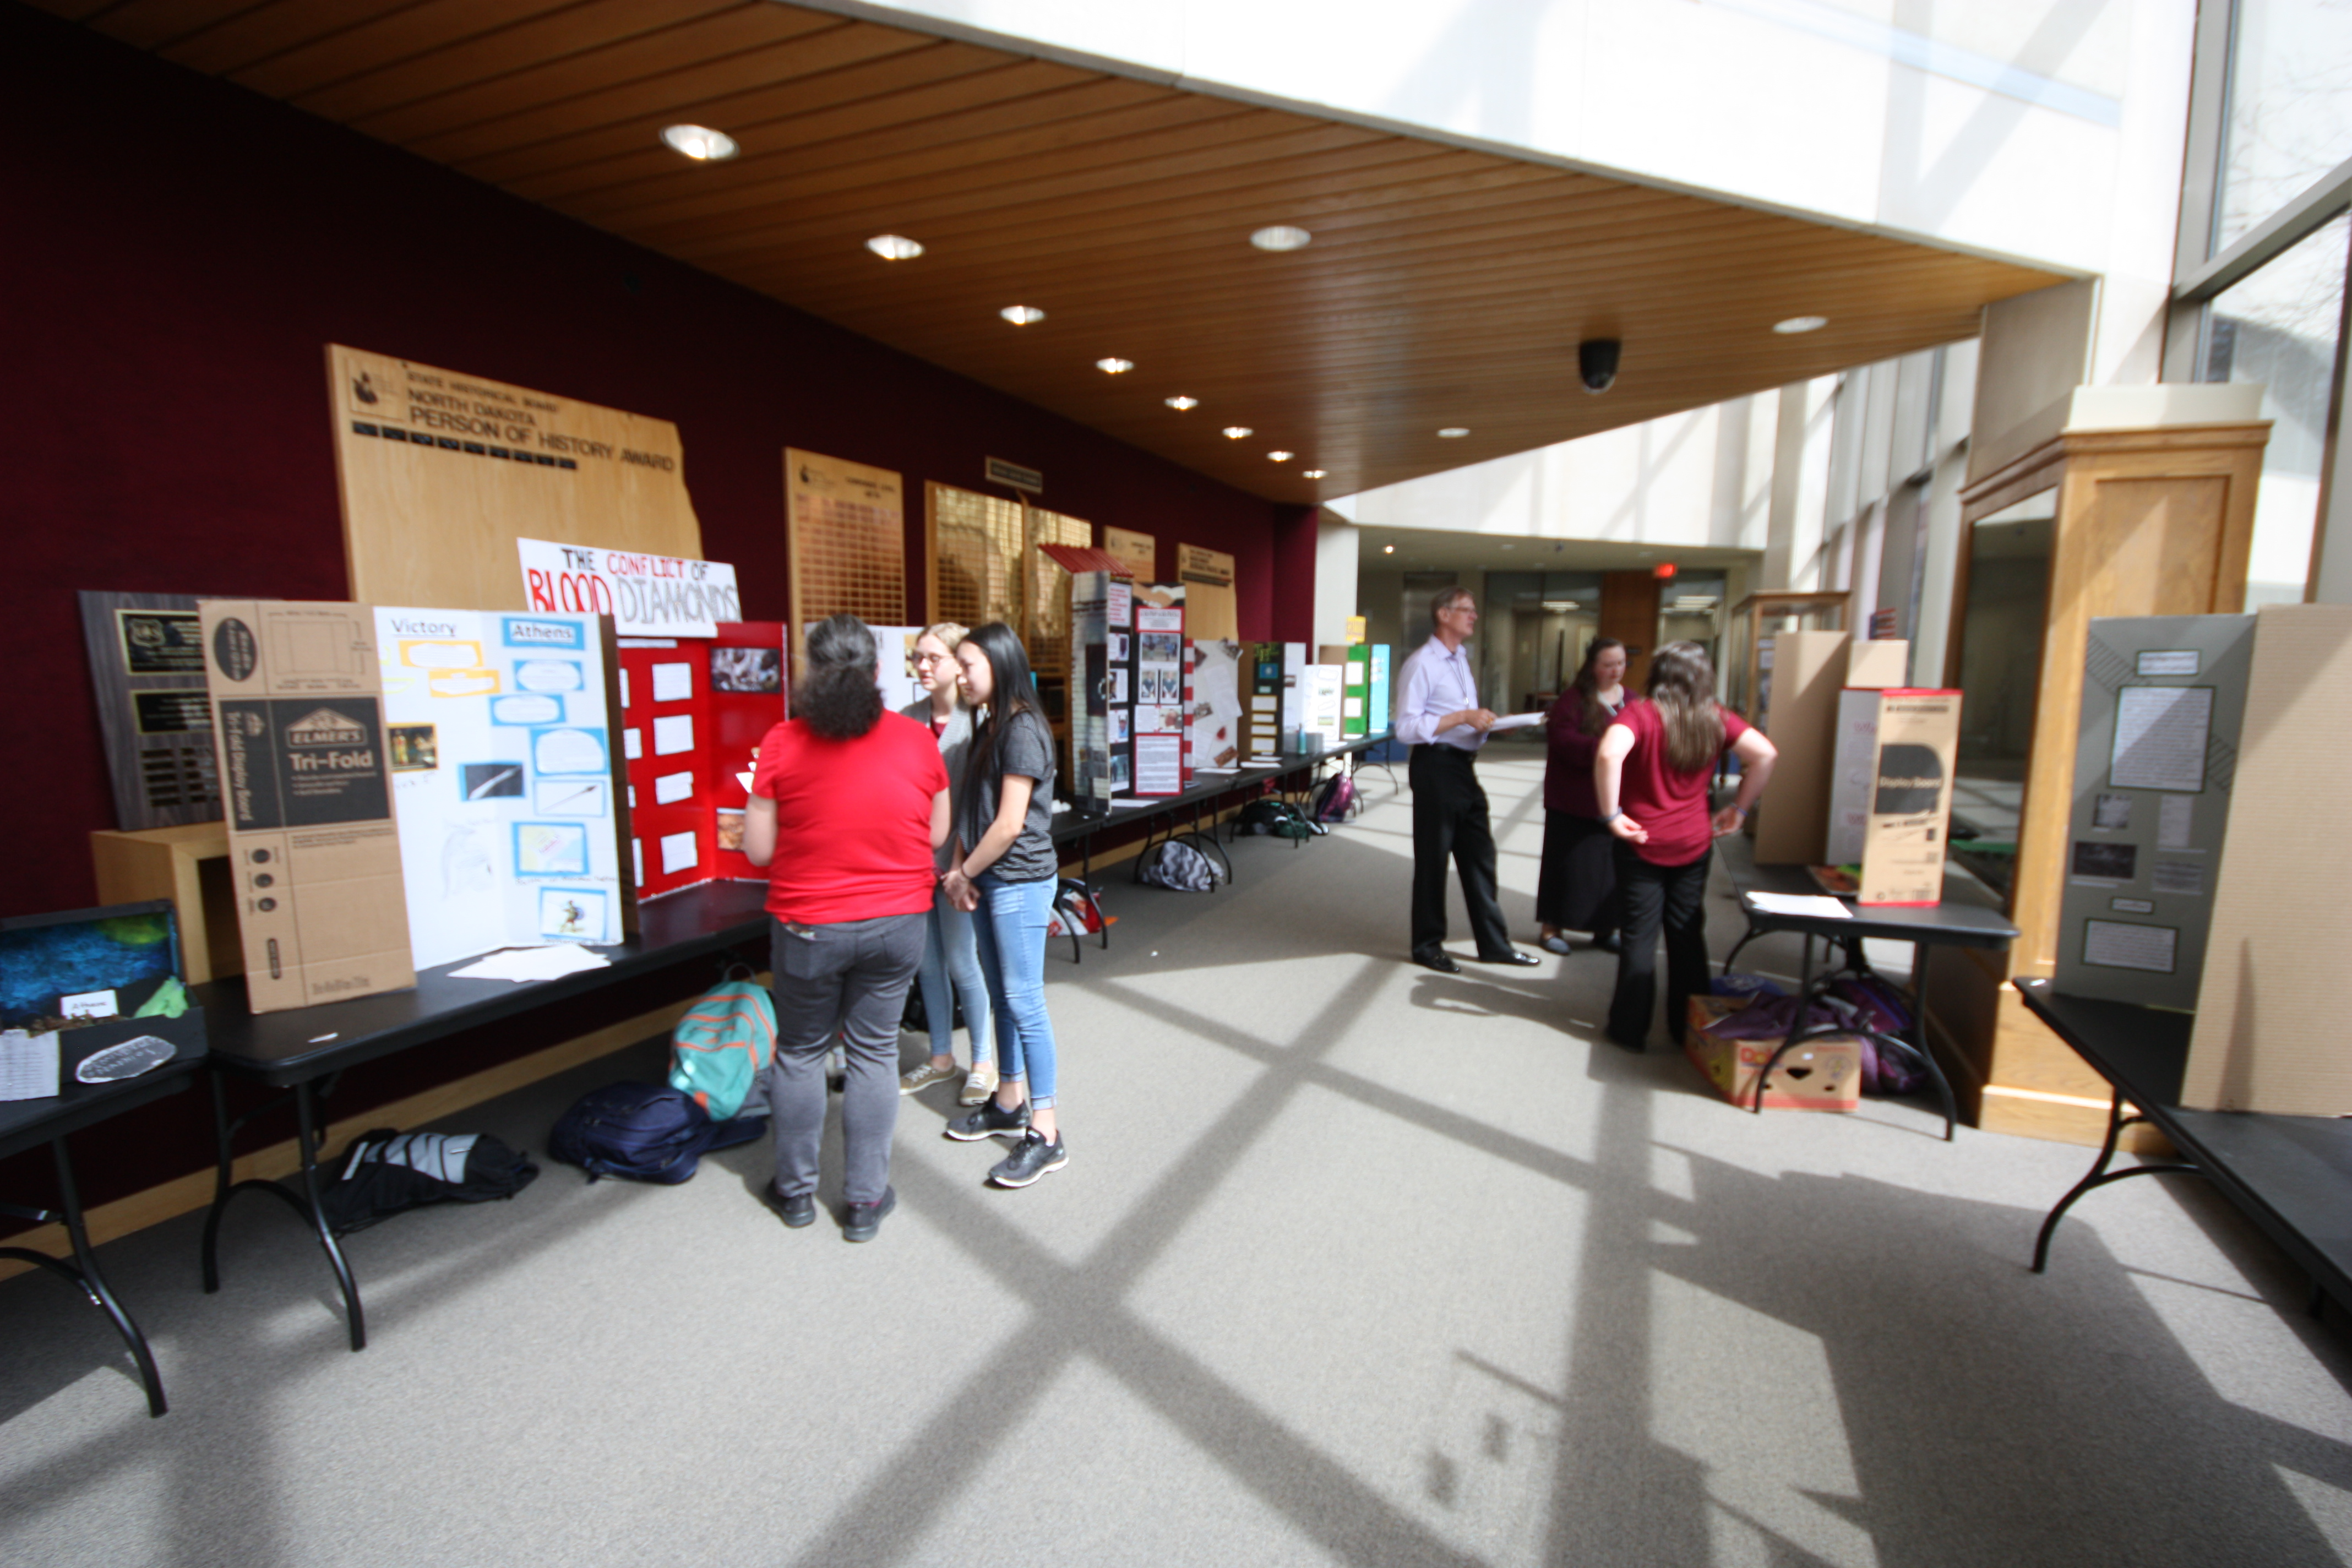 ND Heritage Center with History Day contestant exhibits and judges. Judges inquire about the student's project and score according to the contest guidelines.